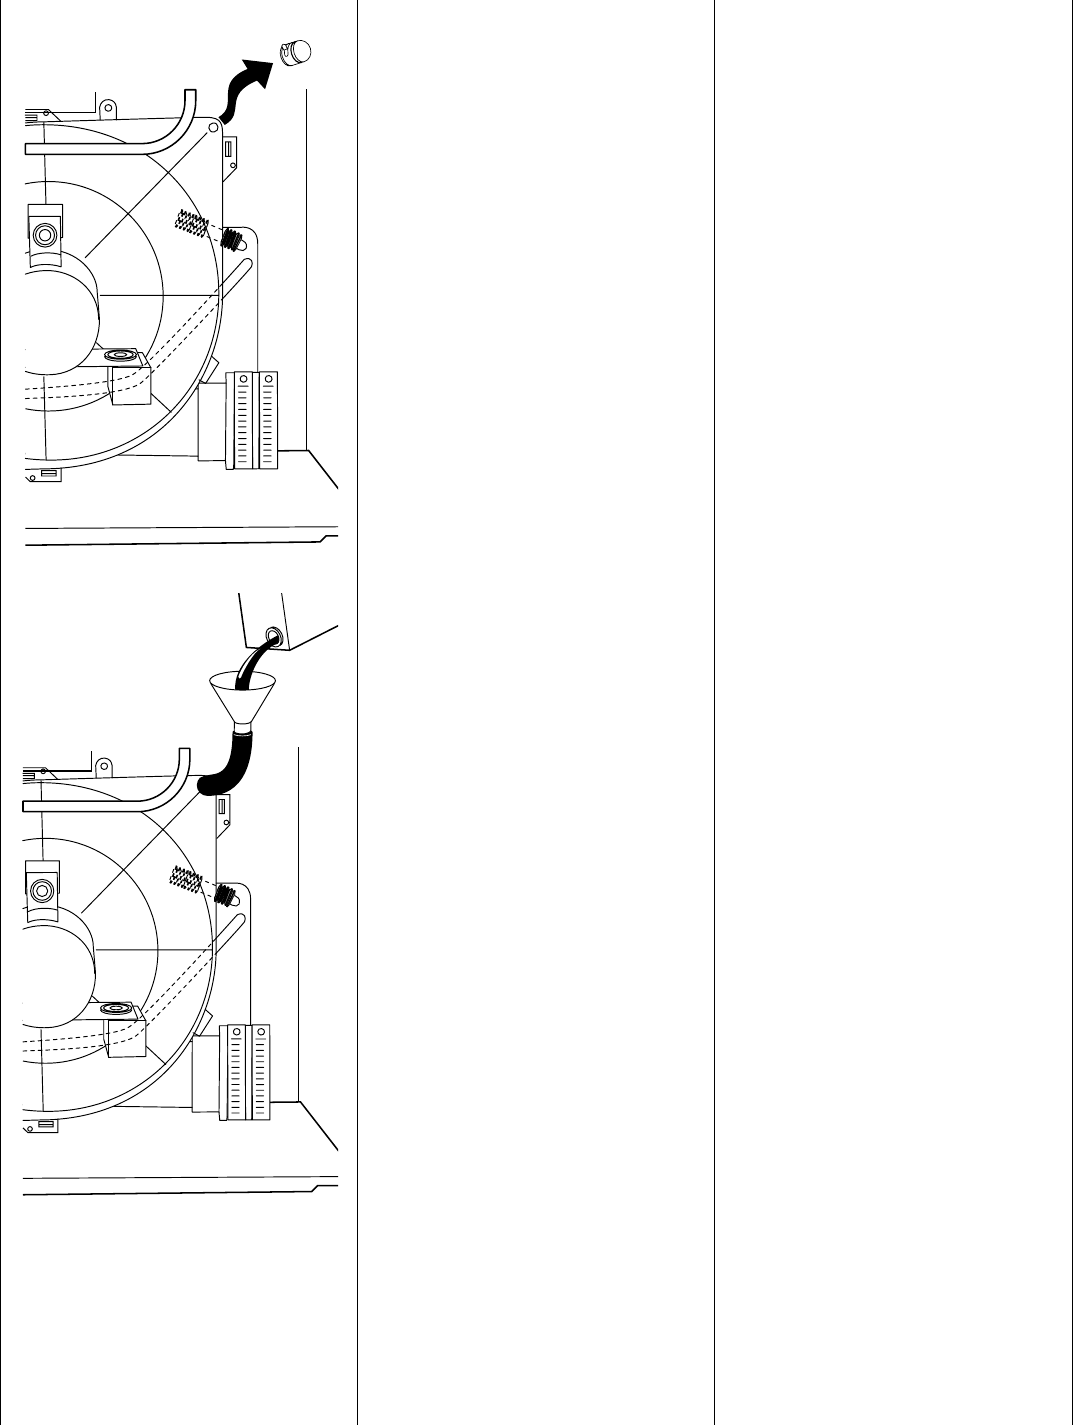 Bryant Furnace: Wiring Diagram For Bryant Furnace